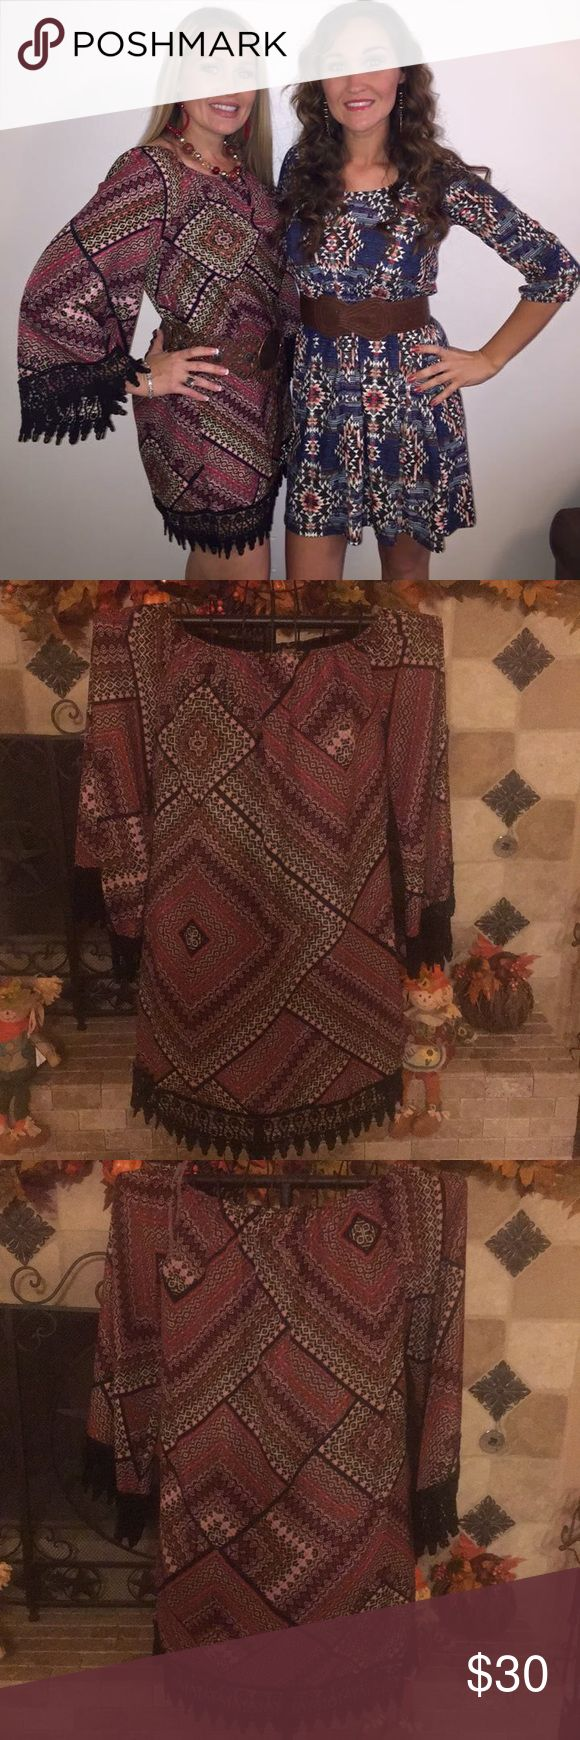 Wrangler bell sleeve dress Wrangler bell sleeve dress. Only worn once to a concert. Super cute with western boots. I'm 5'4 and it hit about mid thigh on me. Wrangler Dresses